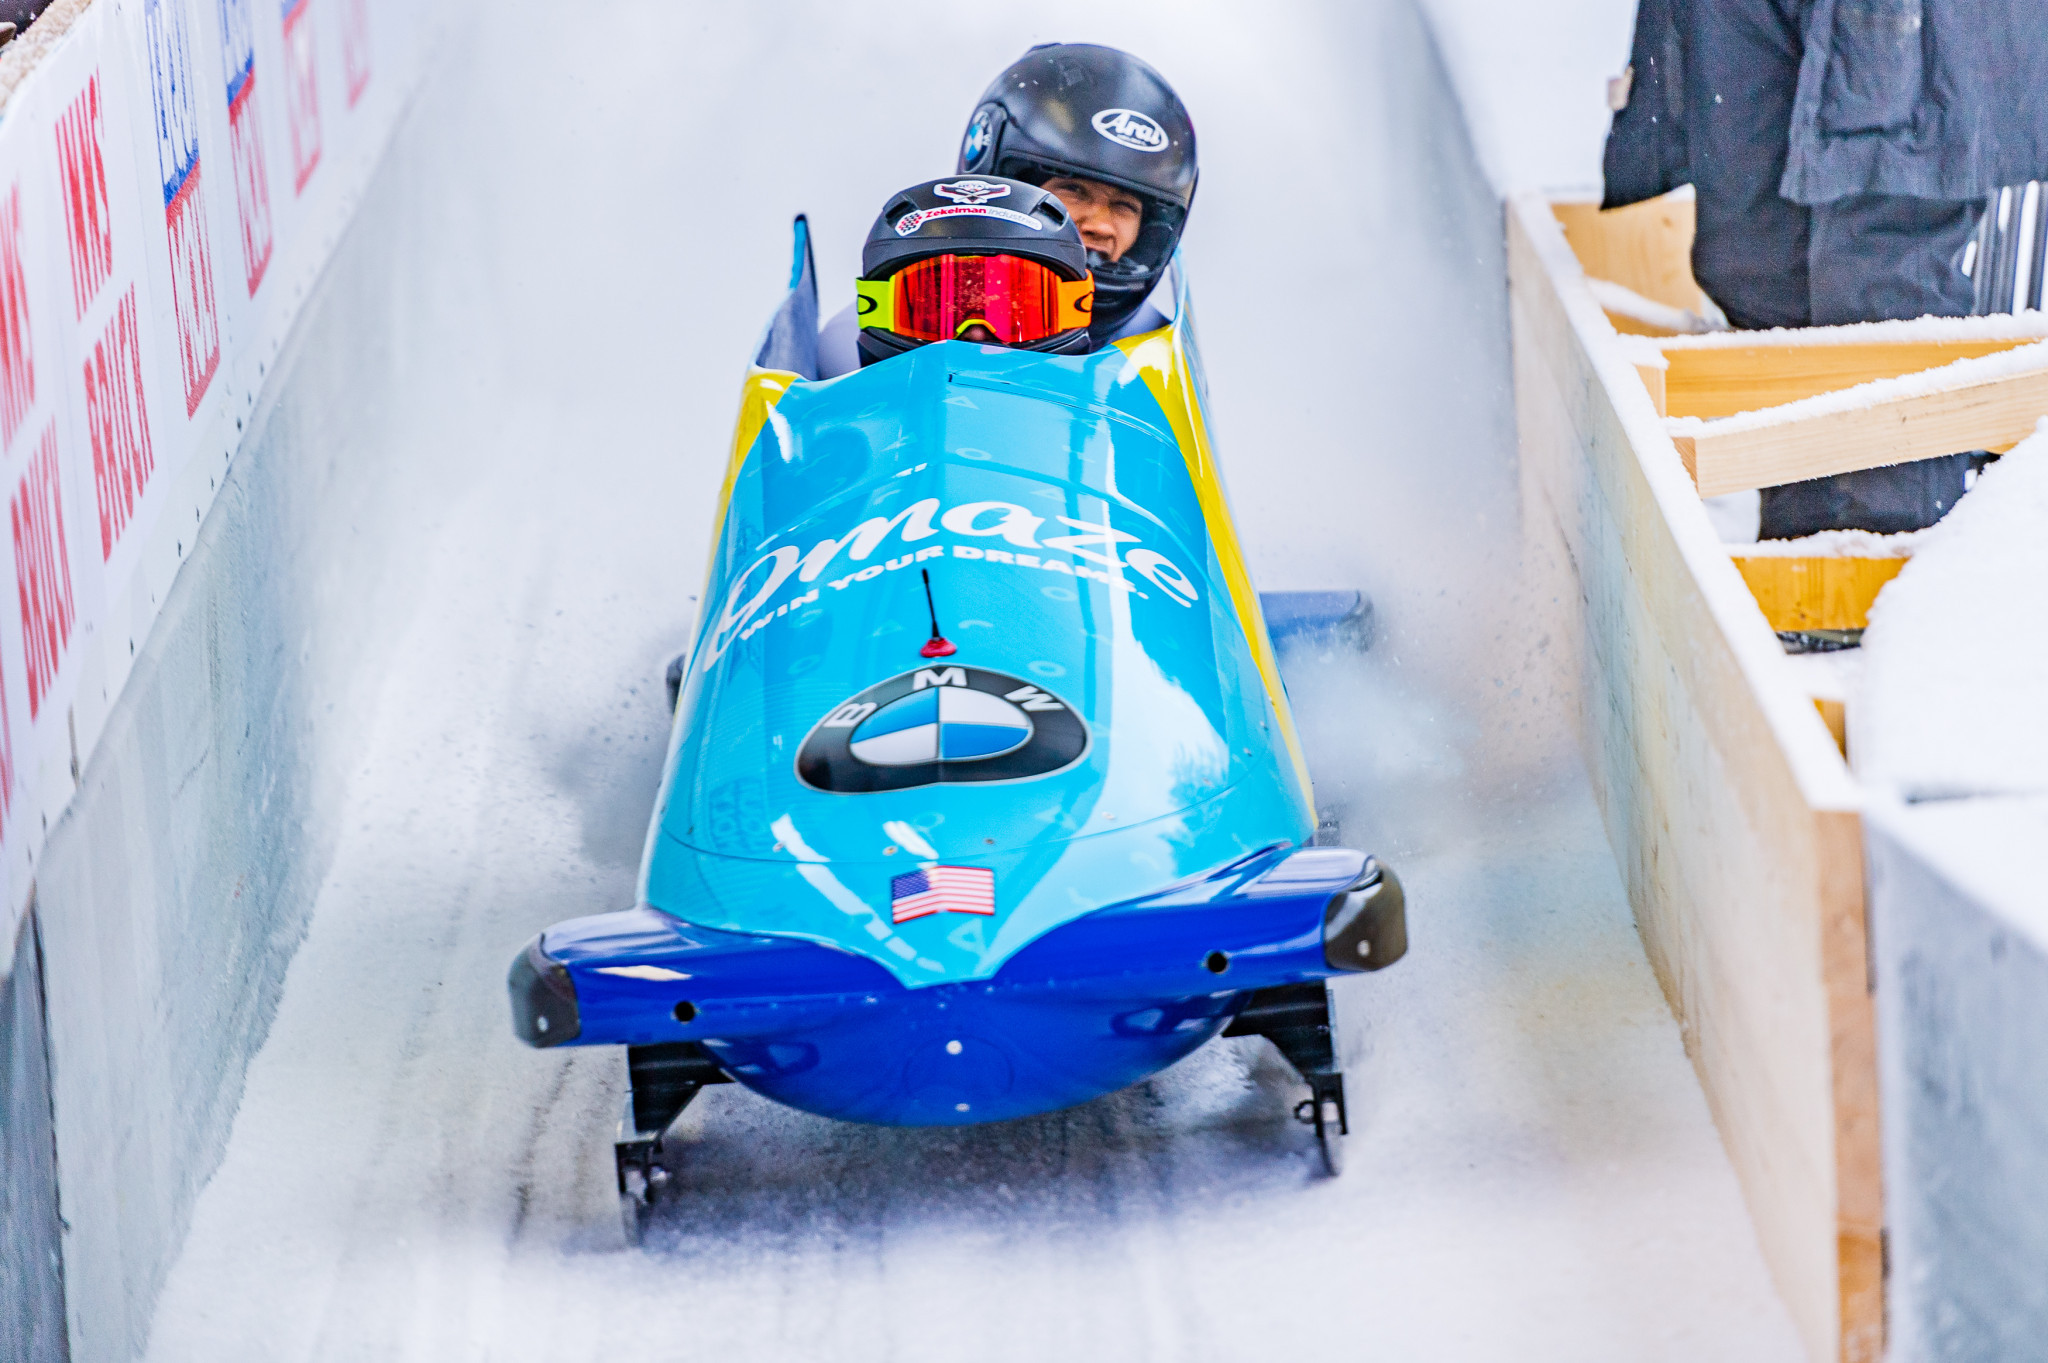 Kaillie Humphries took charge on the first day of the two-woman event at the IBSF World Championships in Altenberg ©Getty Images